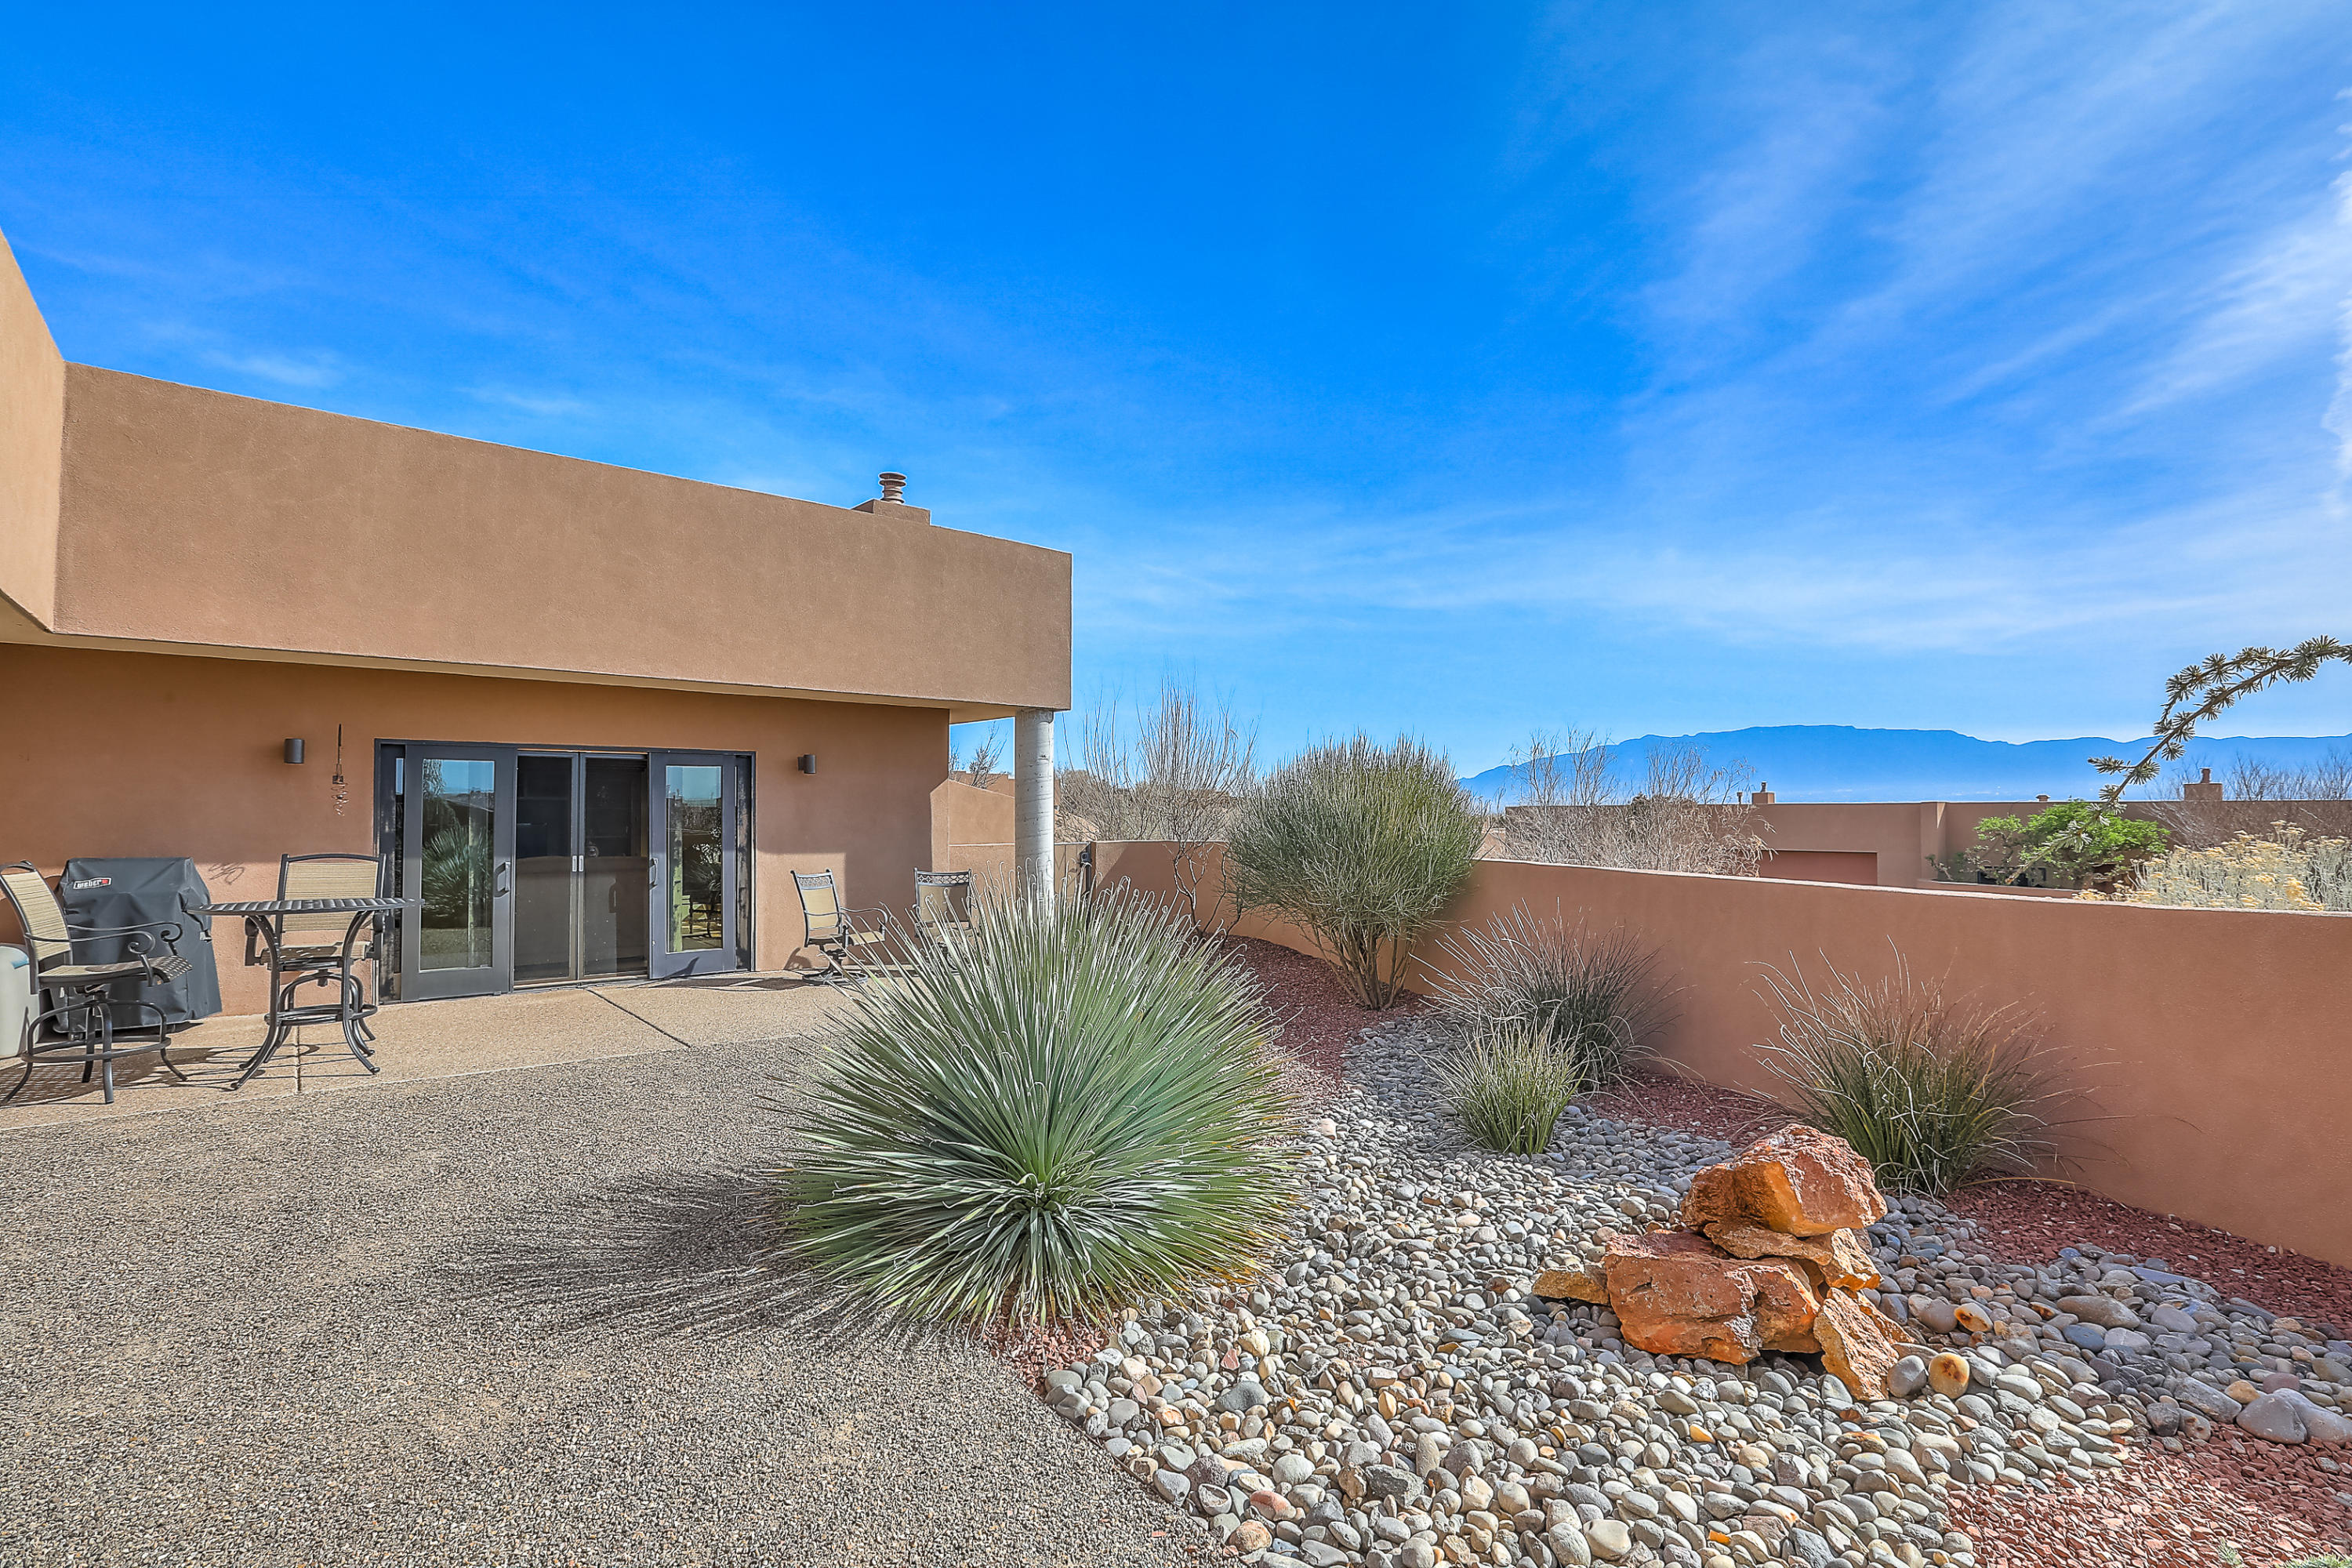 32 NW Wind Road, one of homes for sale in Northwest Albuquerque and Northwest Heights